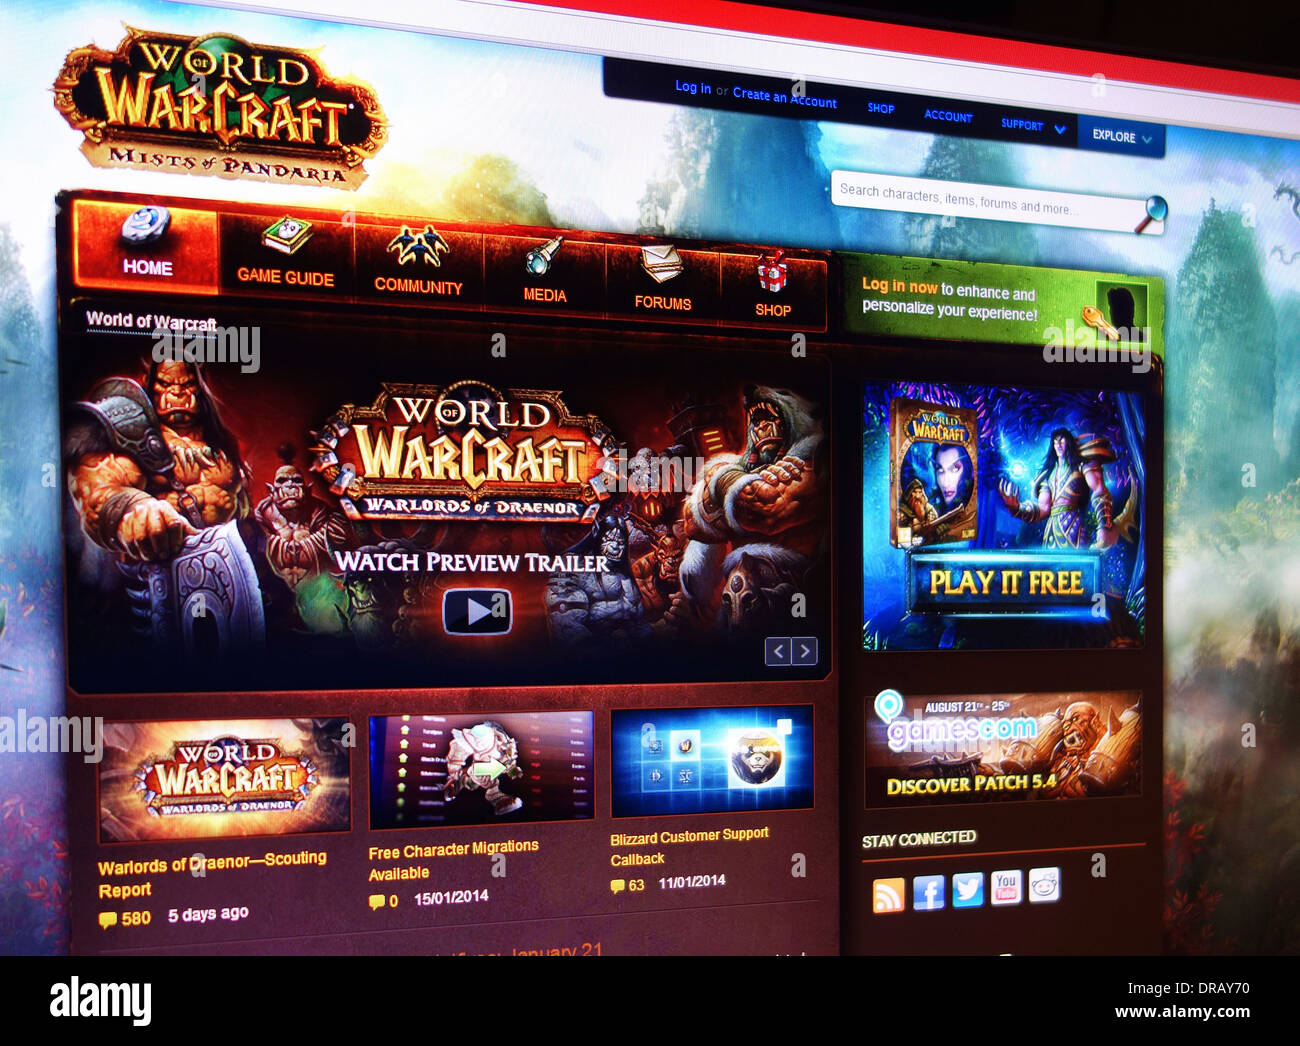 world of warcraft gaming web site - Stock Image